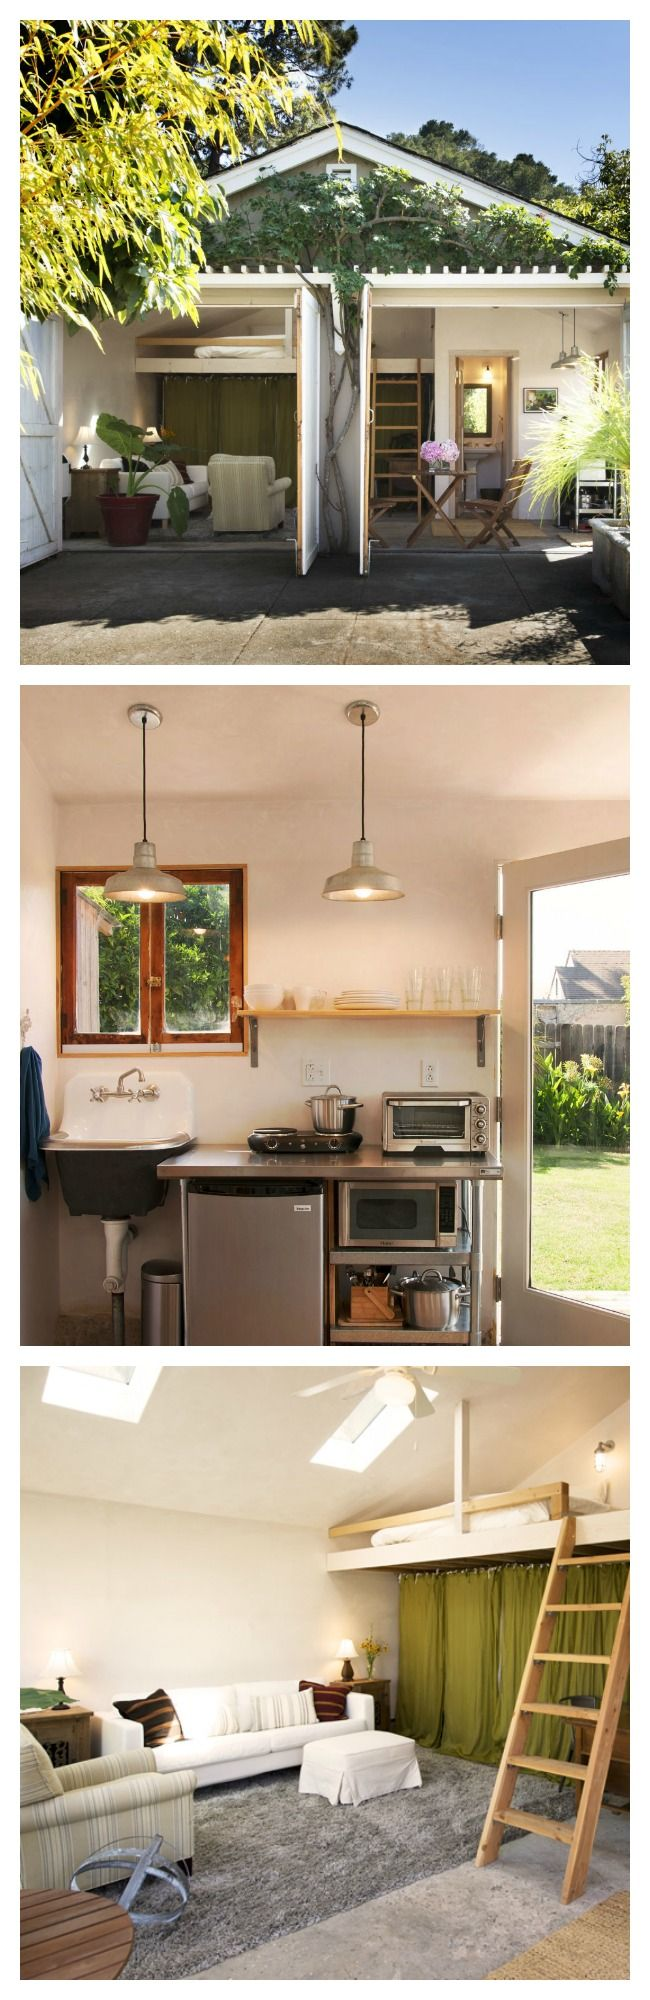 Get inspired and transform your garage into a backyard retreat. You can easily make a junky storage space into a cozy, amplified she-shed. With a little elbow grease and creativity, your garage can be restructured to have a kitchen, bedroom, bathroom, and sitting porch.